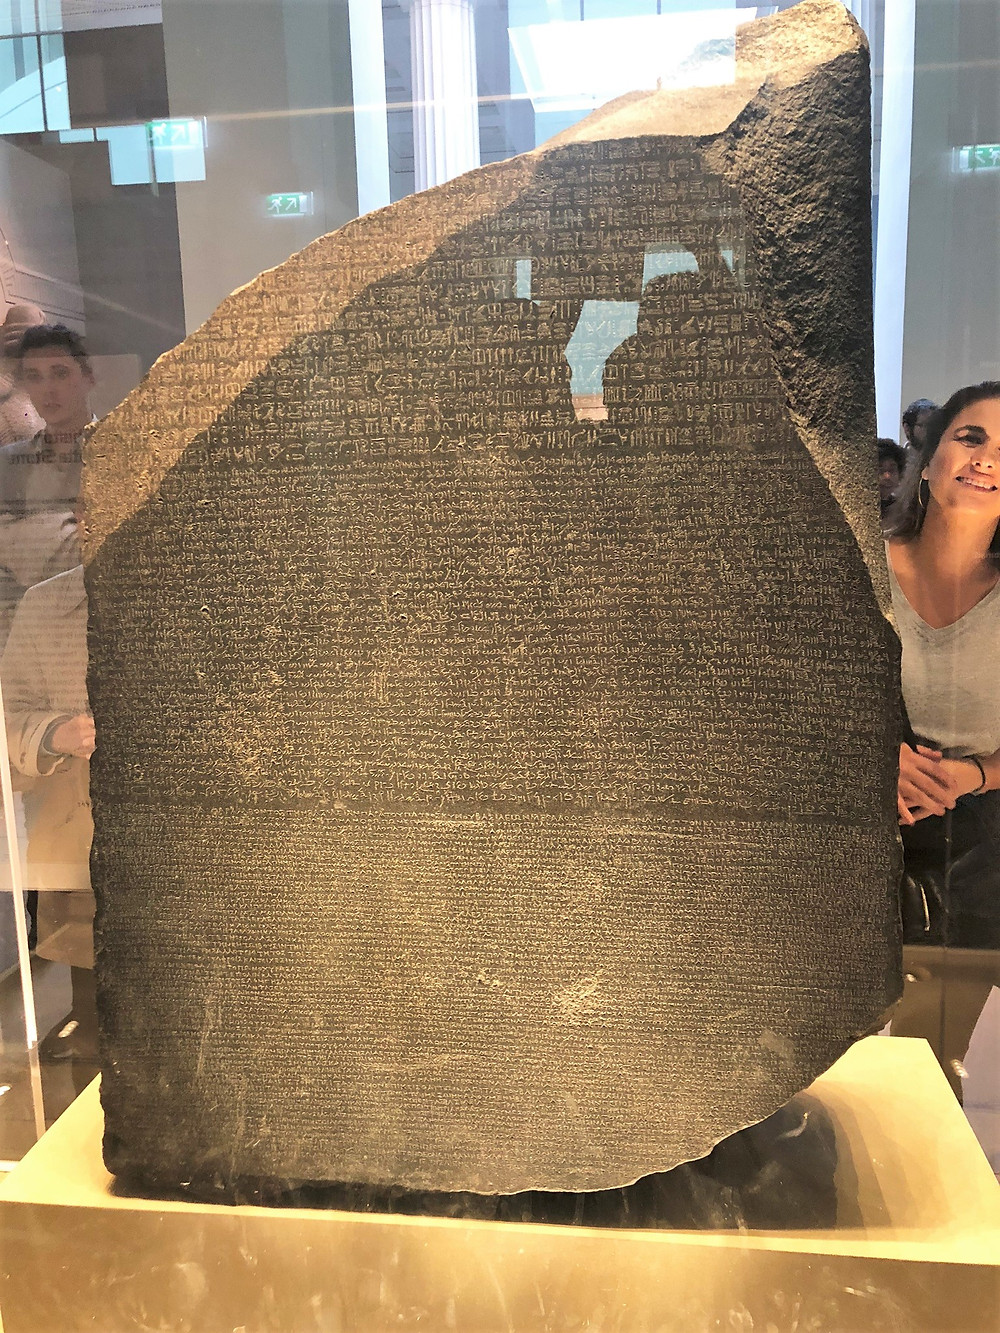 The Rosetta Stone on public display at the British Museum almost continuously since 1802